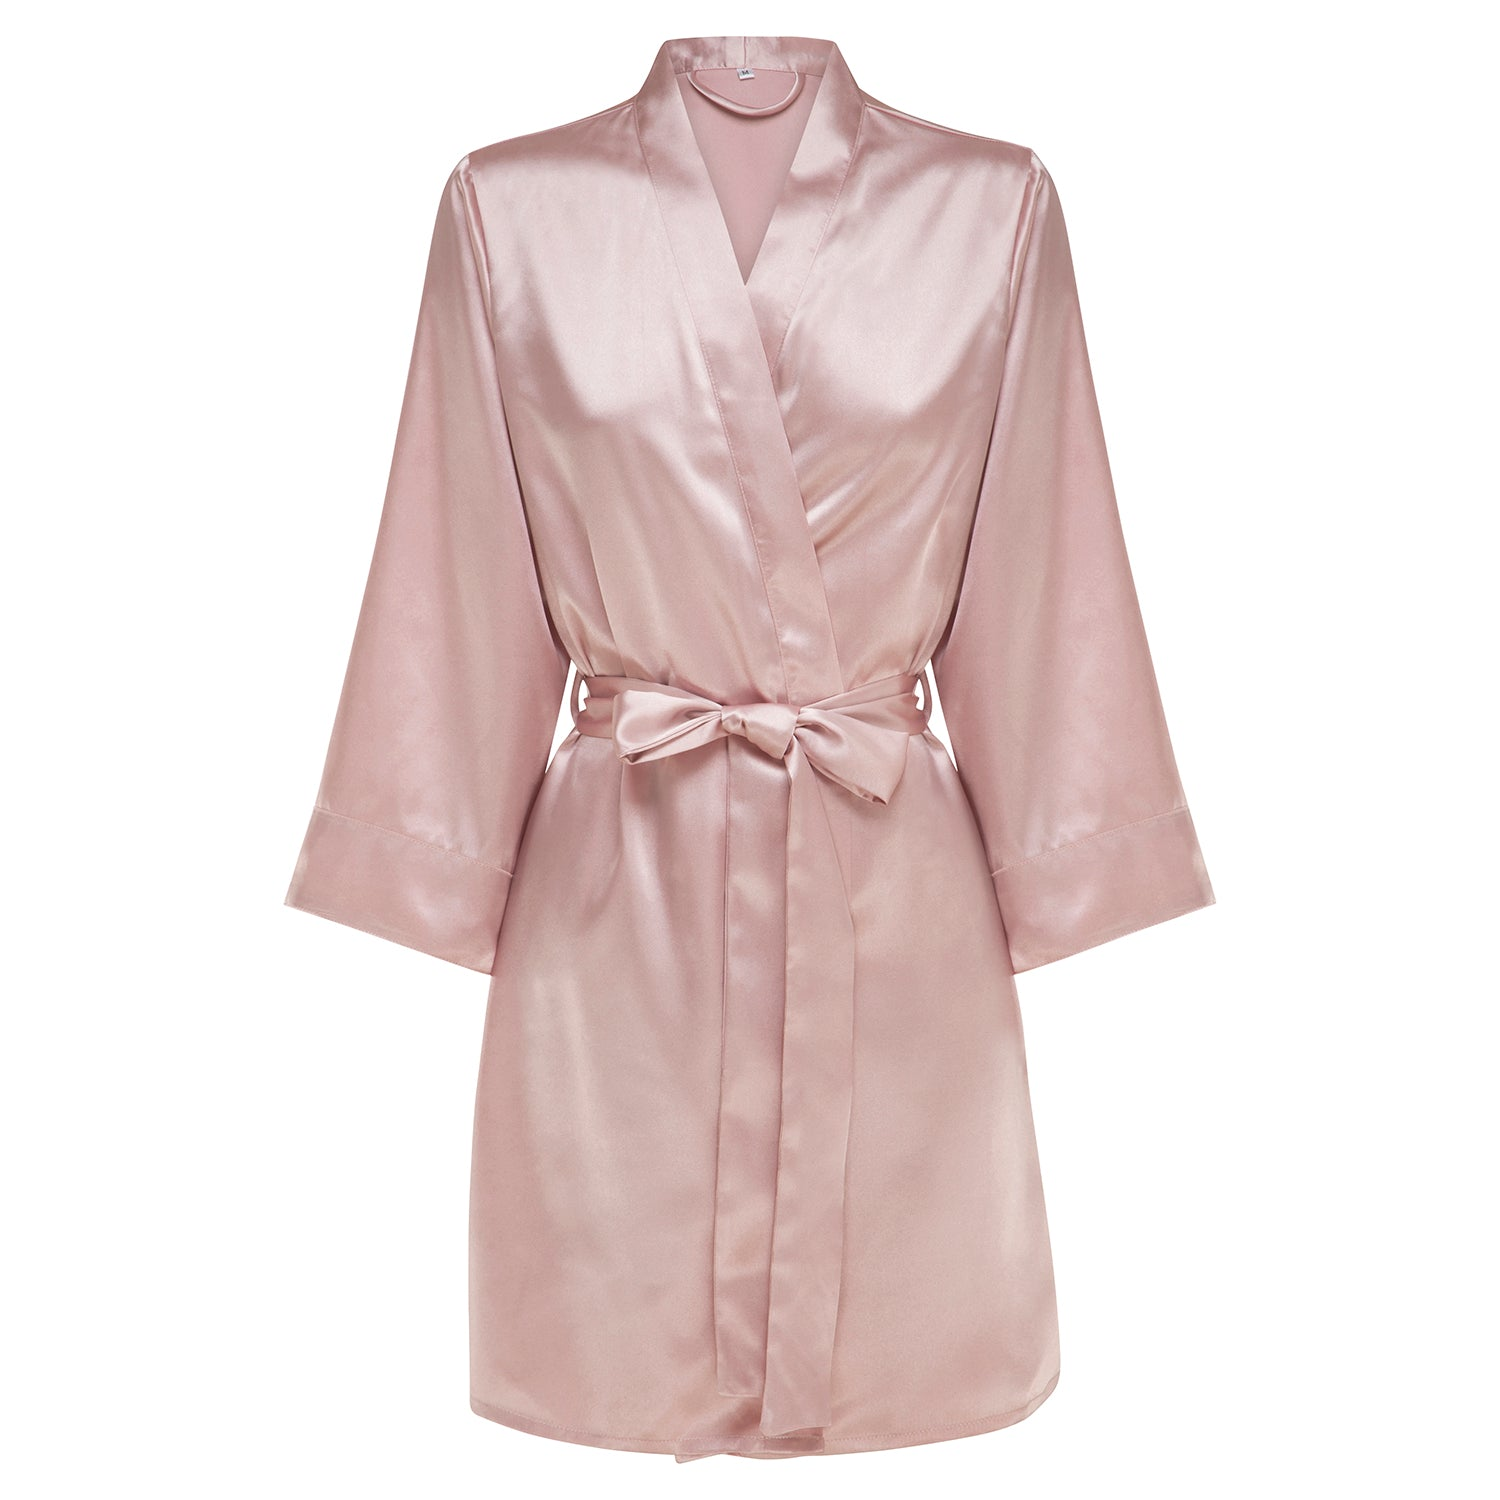 Rosie - Rose Blush Satin Robe